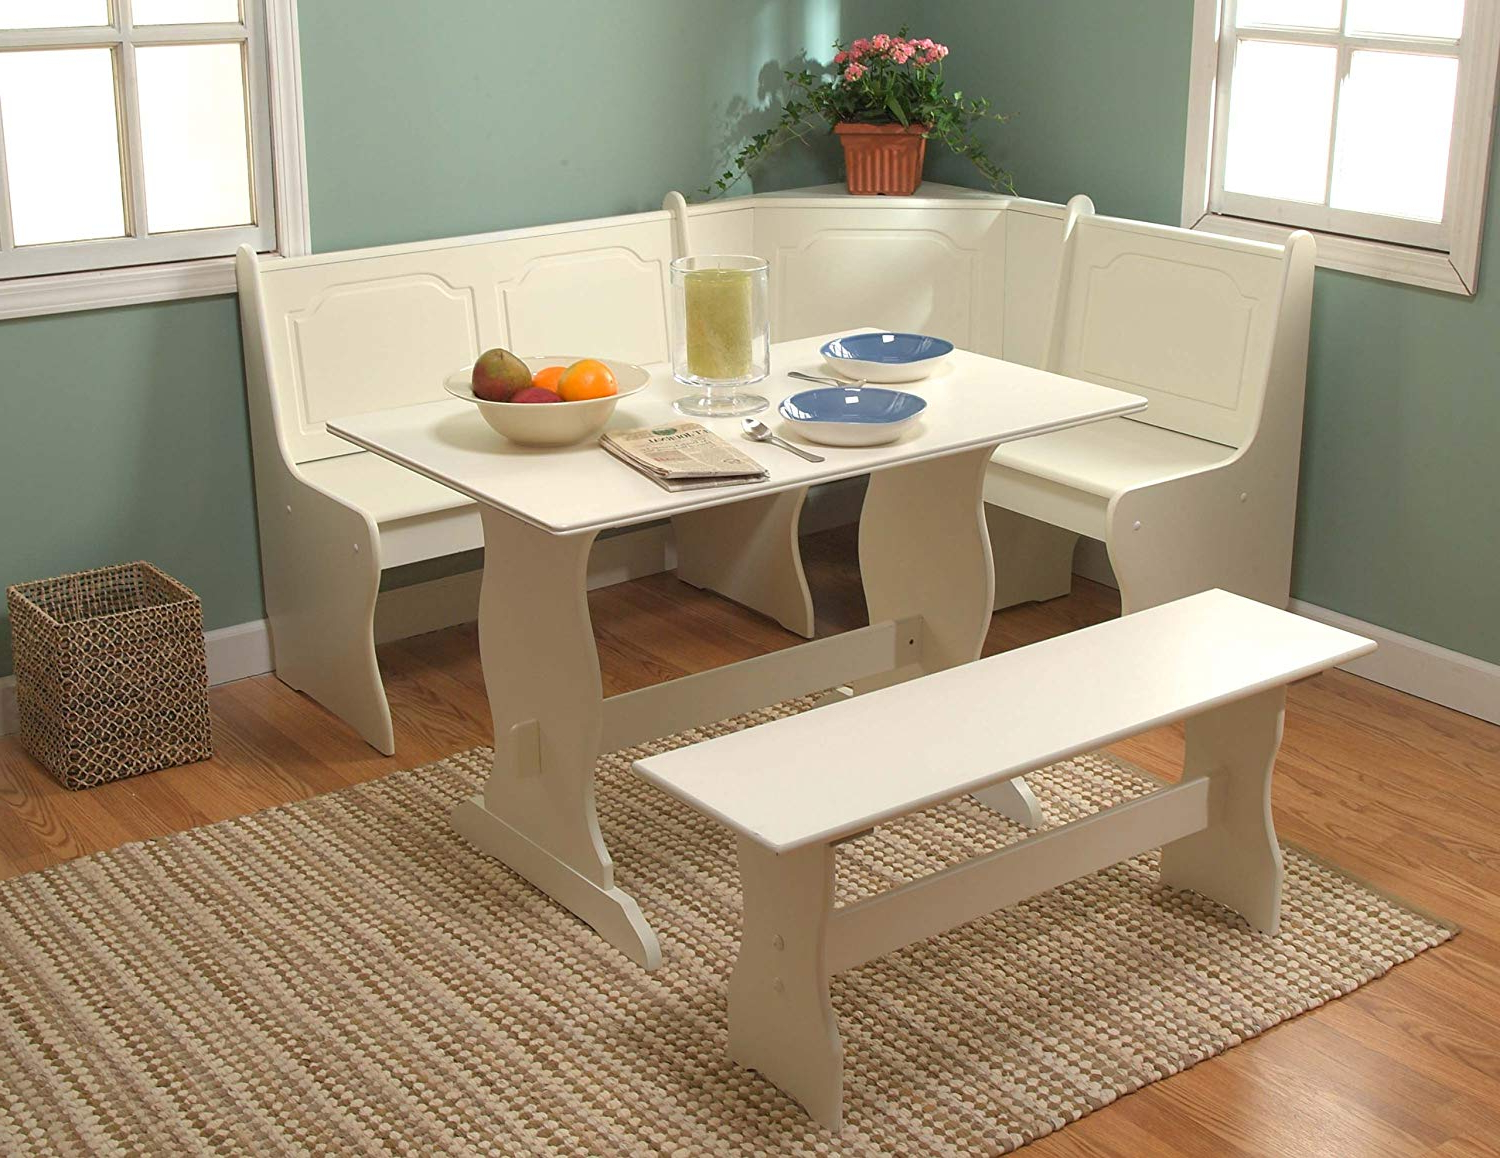 3 Piece Breakfast Dining Sets With Regard To Widely Used Target Marketing Systems 3 Piece Breakfast Nook Dining Set With A L Shaped  Storage Bench And A Trestle Style Dining Table And Bench, Antique White (Gallery 14 of 20)